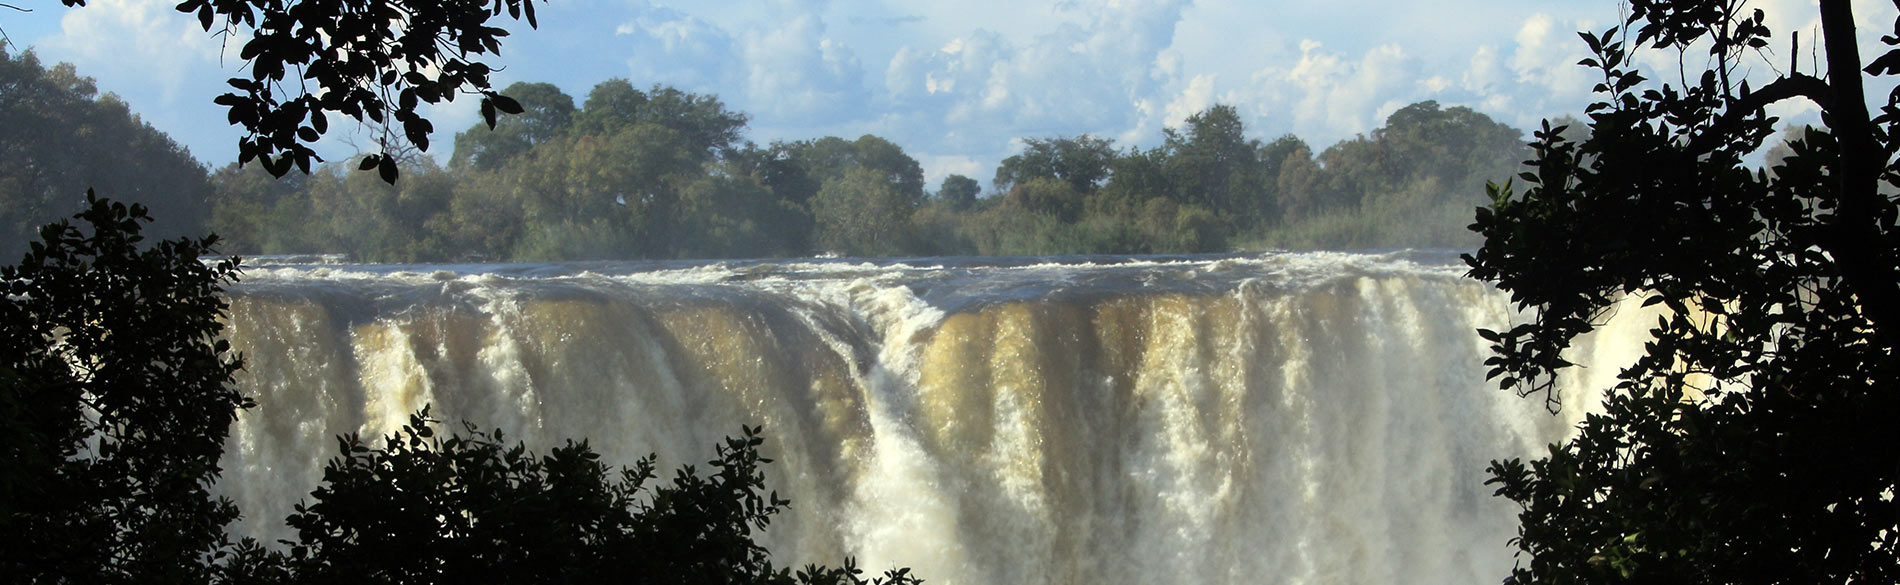 Victoria falls tour packages Zimbabwe